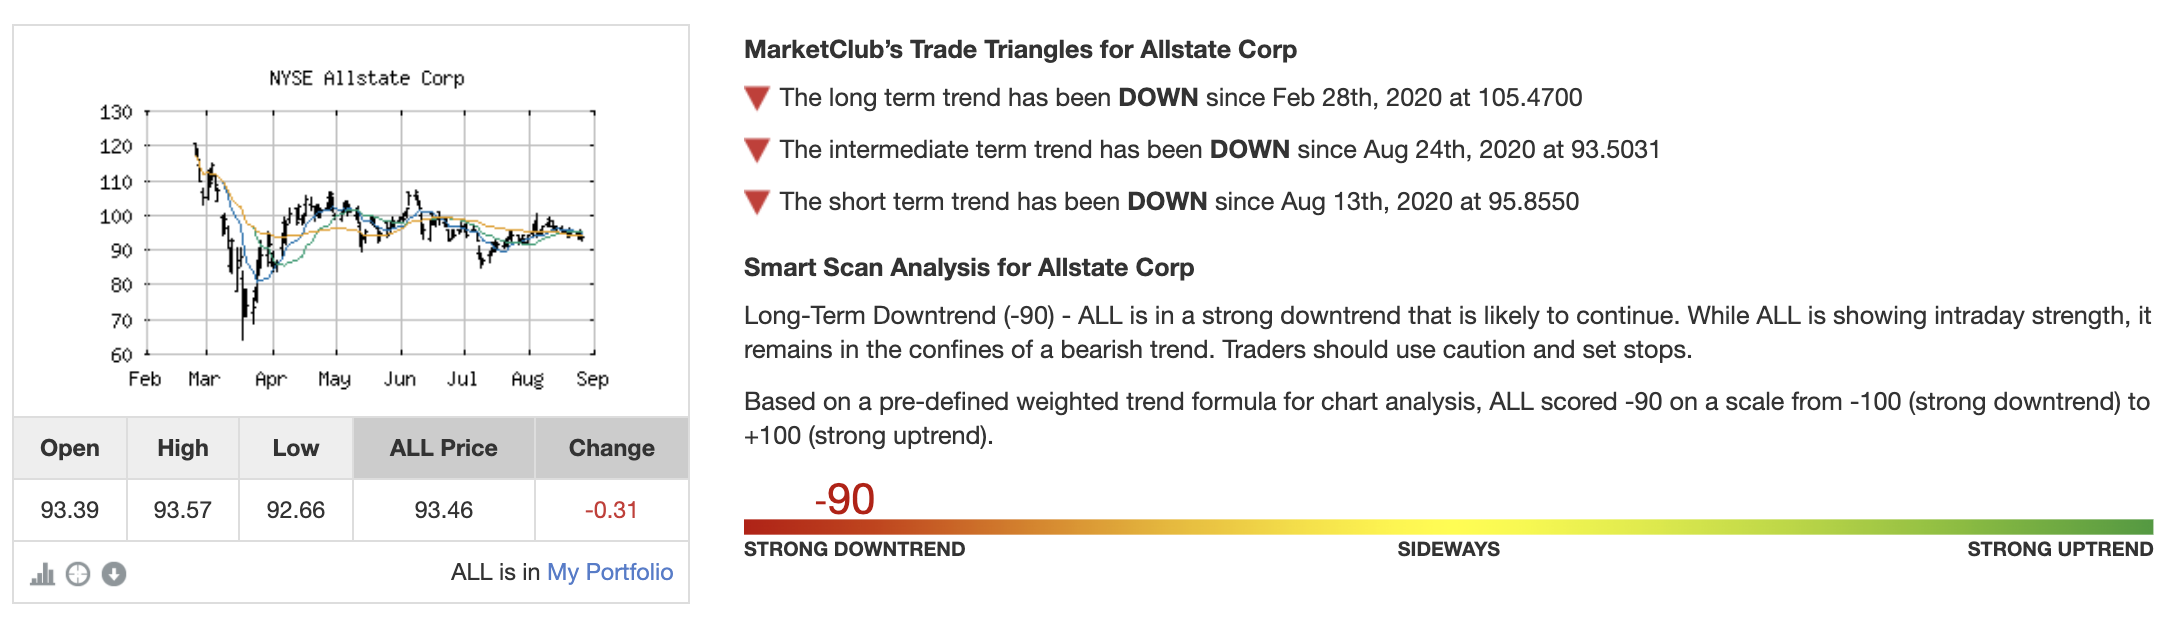 Technical Analysis of The Allstate Corporation (ALL)